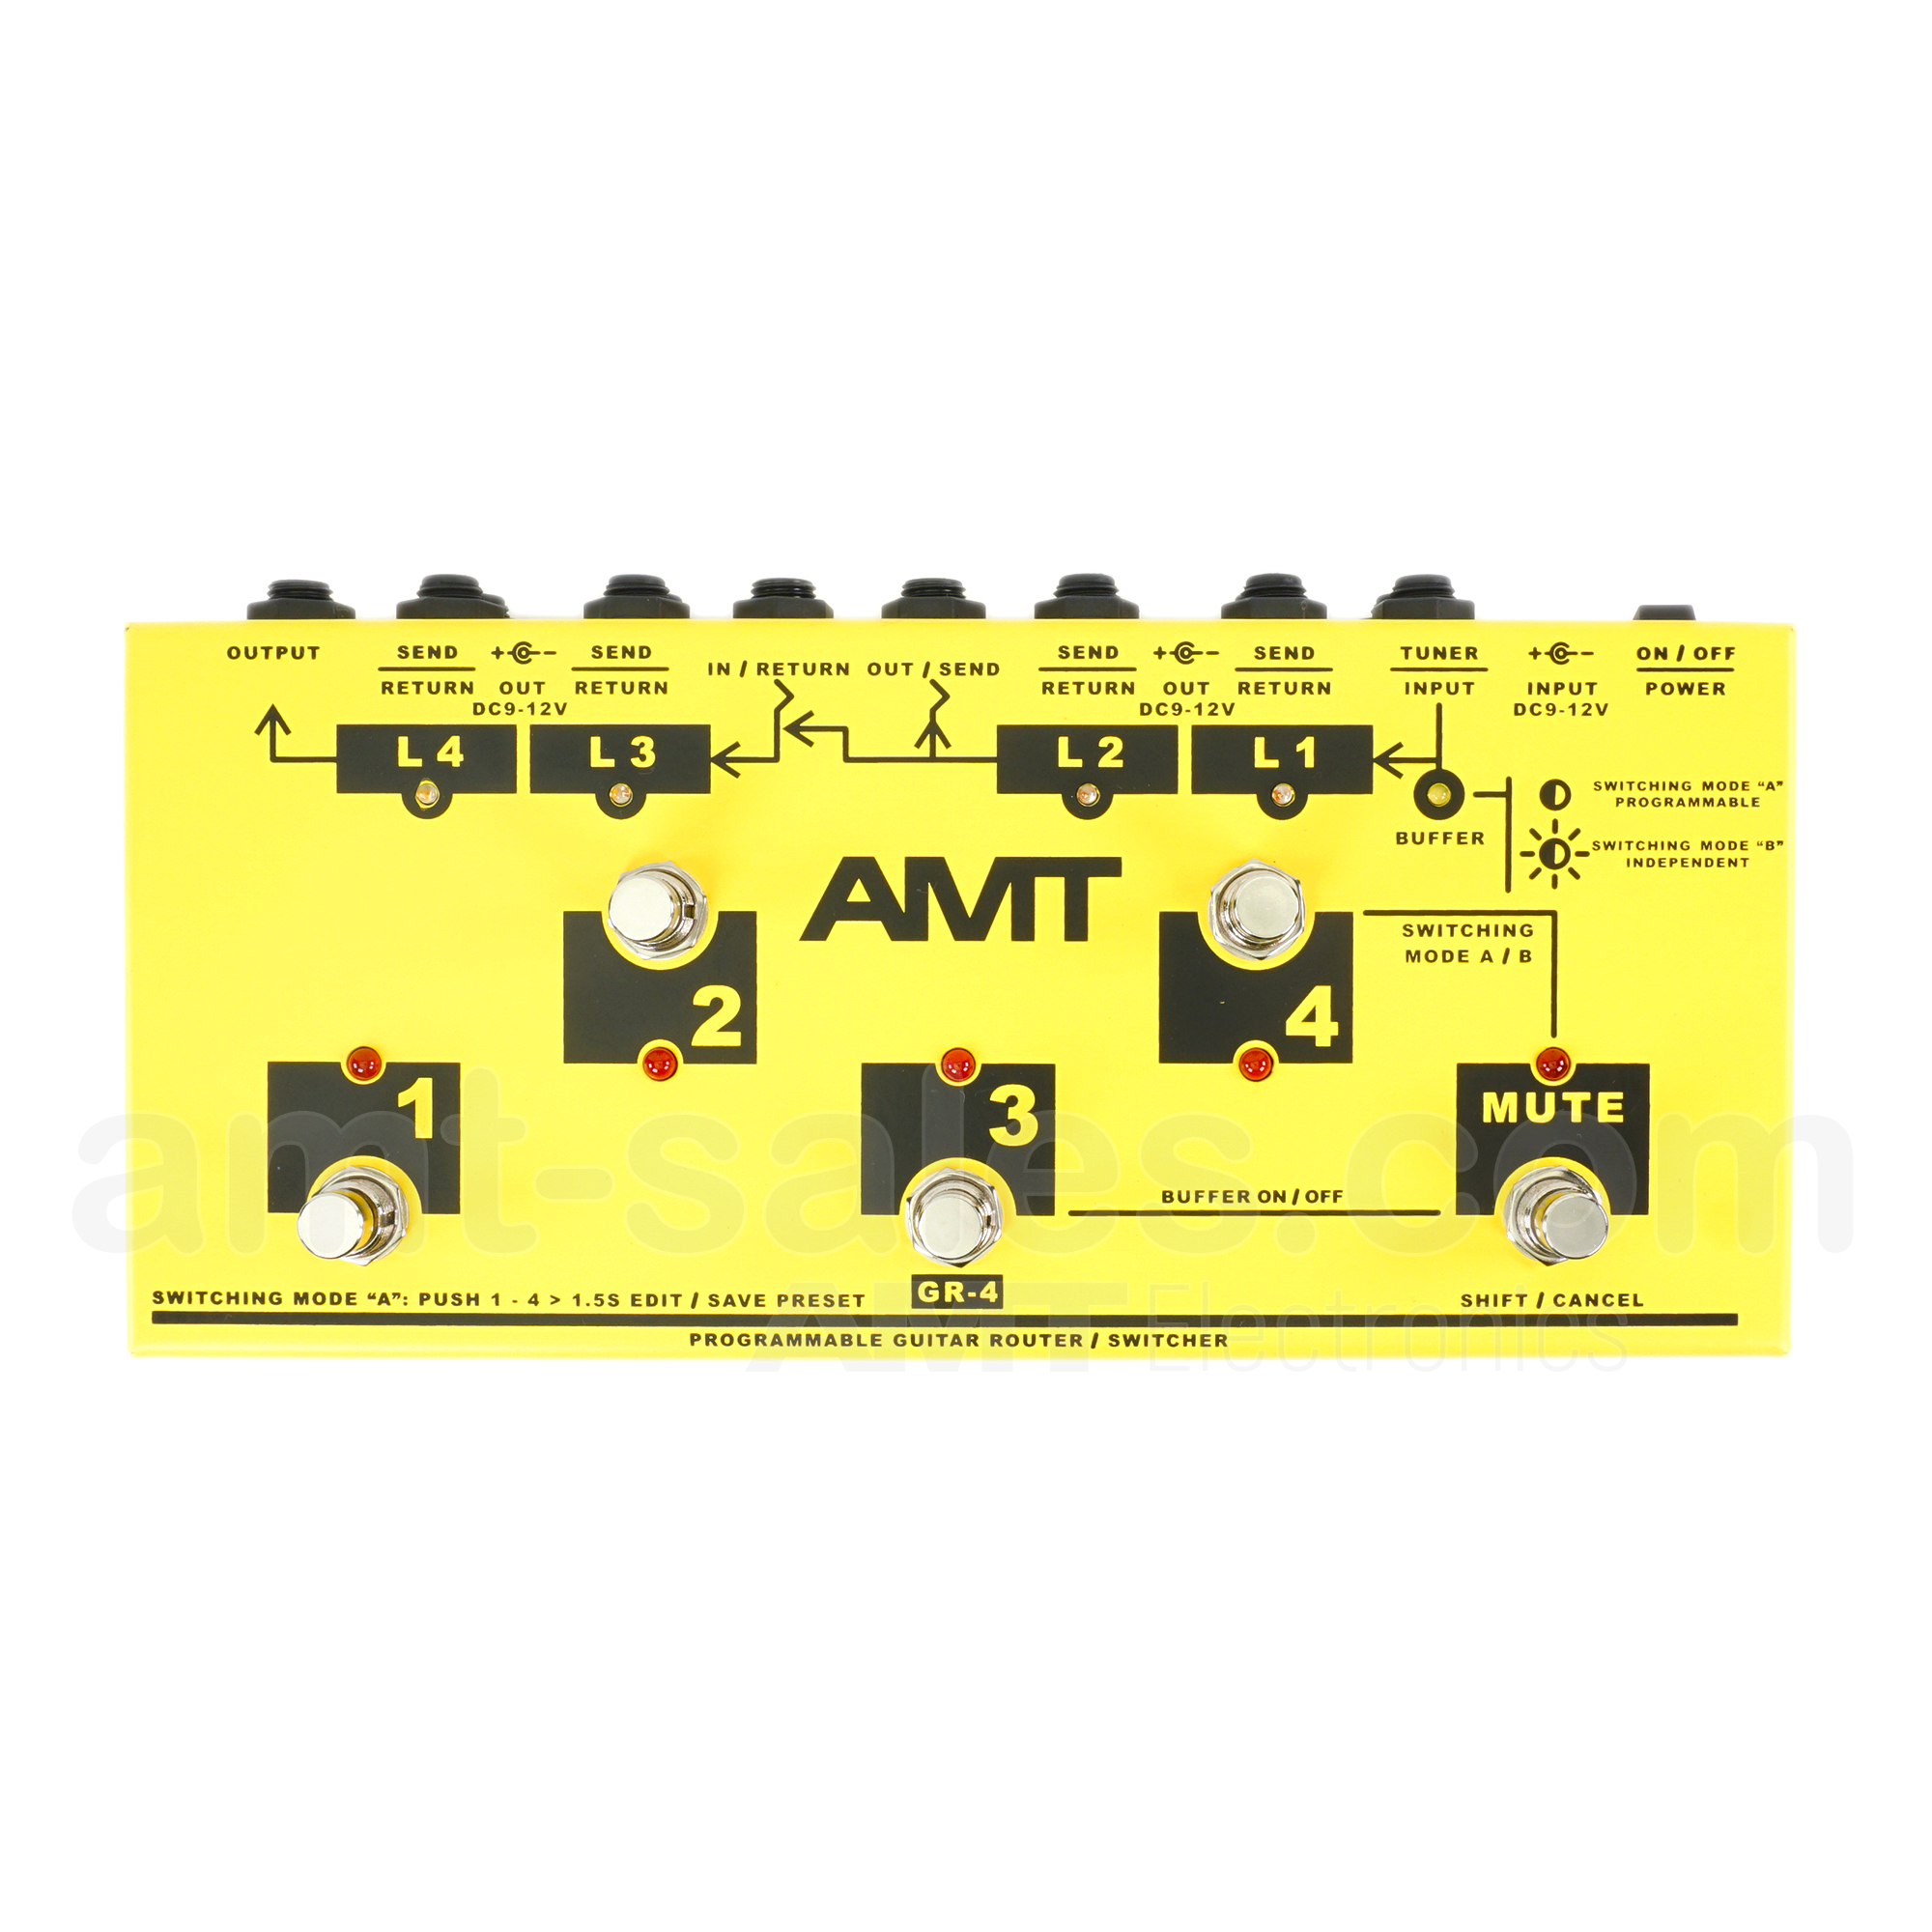 AMT GR-4 - programmable guitar switching system with 4 loops